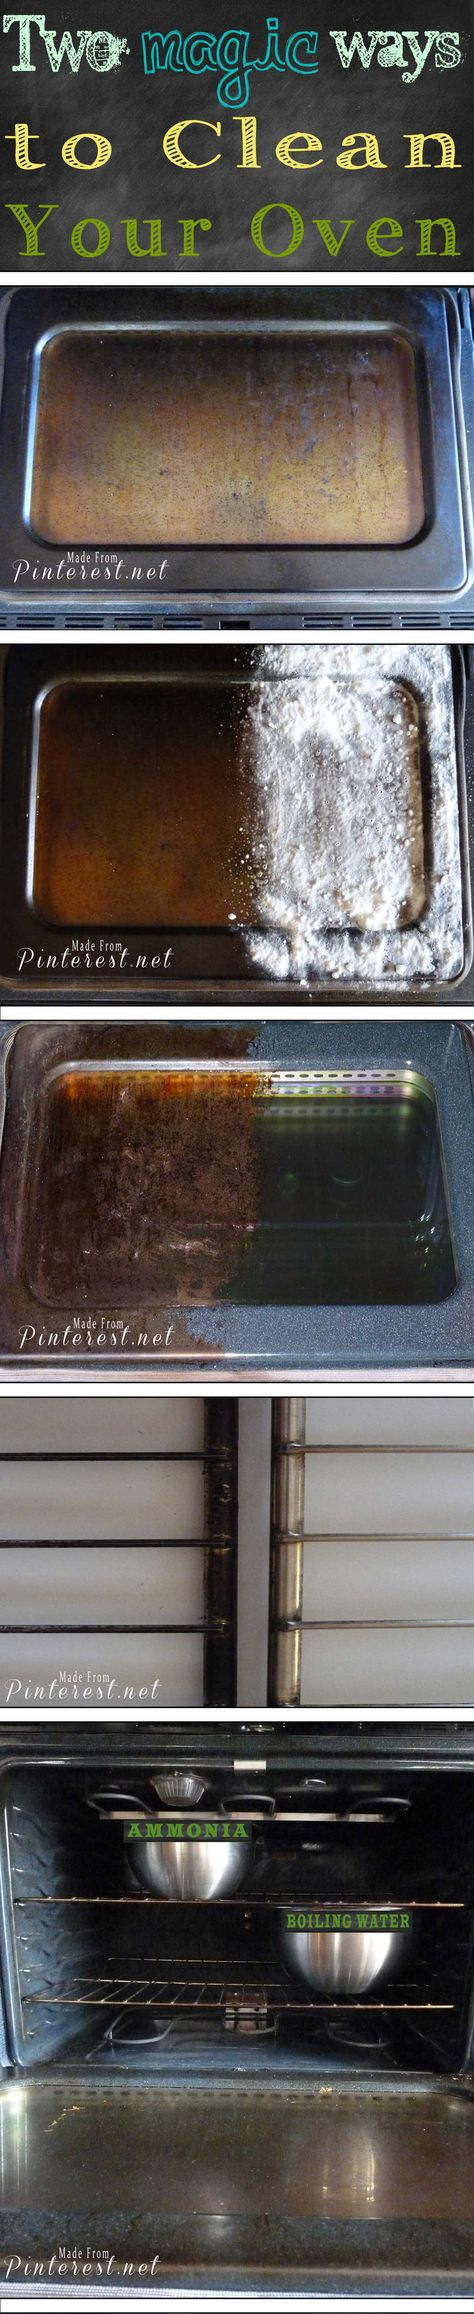 ~Magic Oven Cleaning Method~  so easy to get your oven clean so fast! Do your 5 minute prep the night before, wake up the next morning, wipe it clean and you are done! AWESOME!!